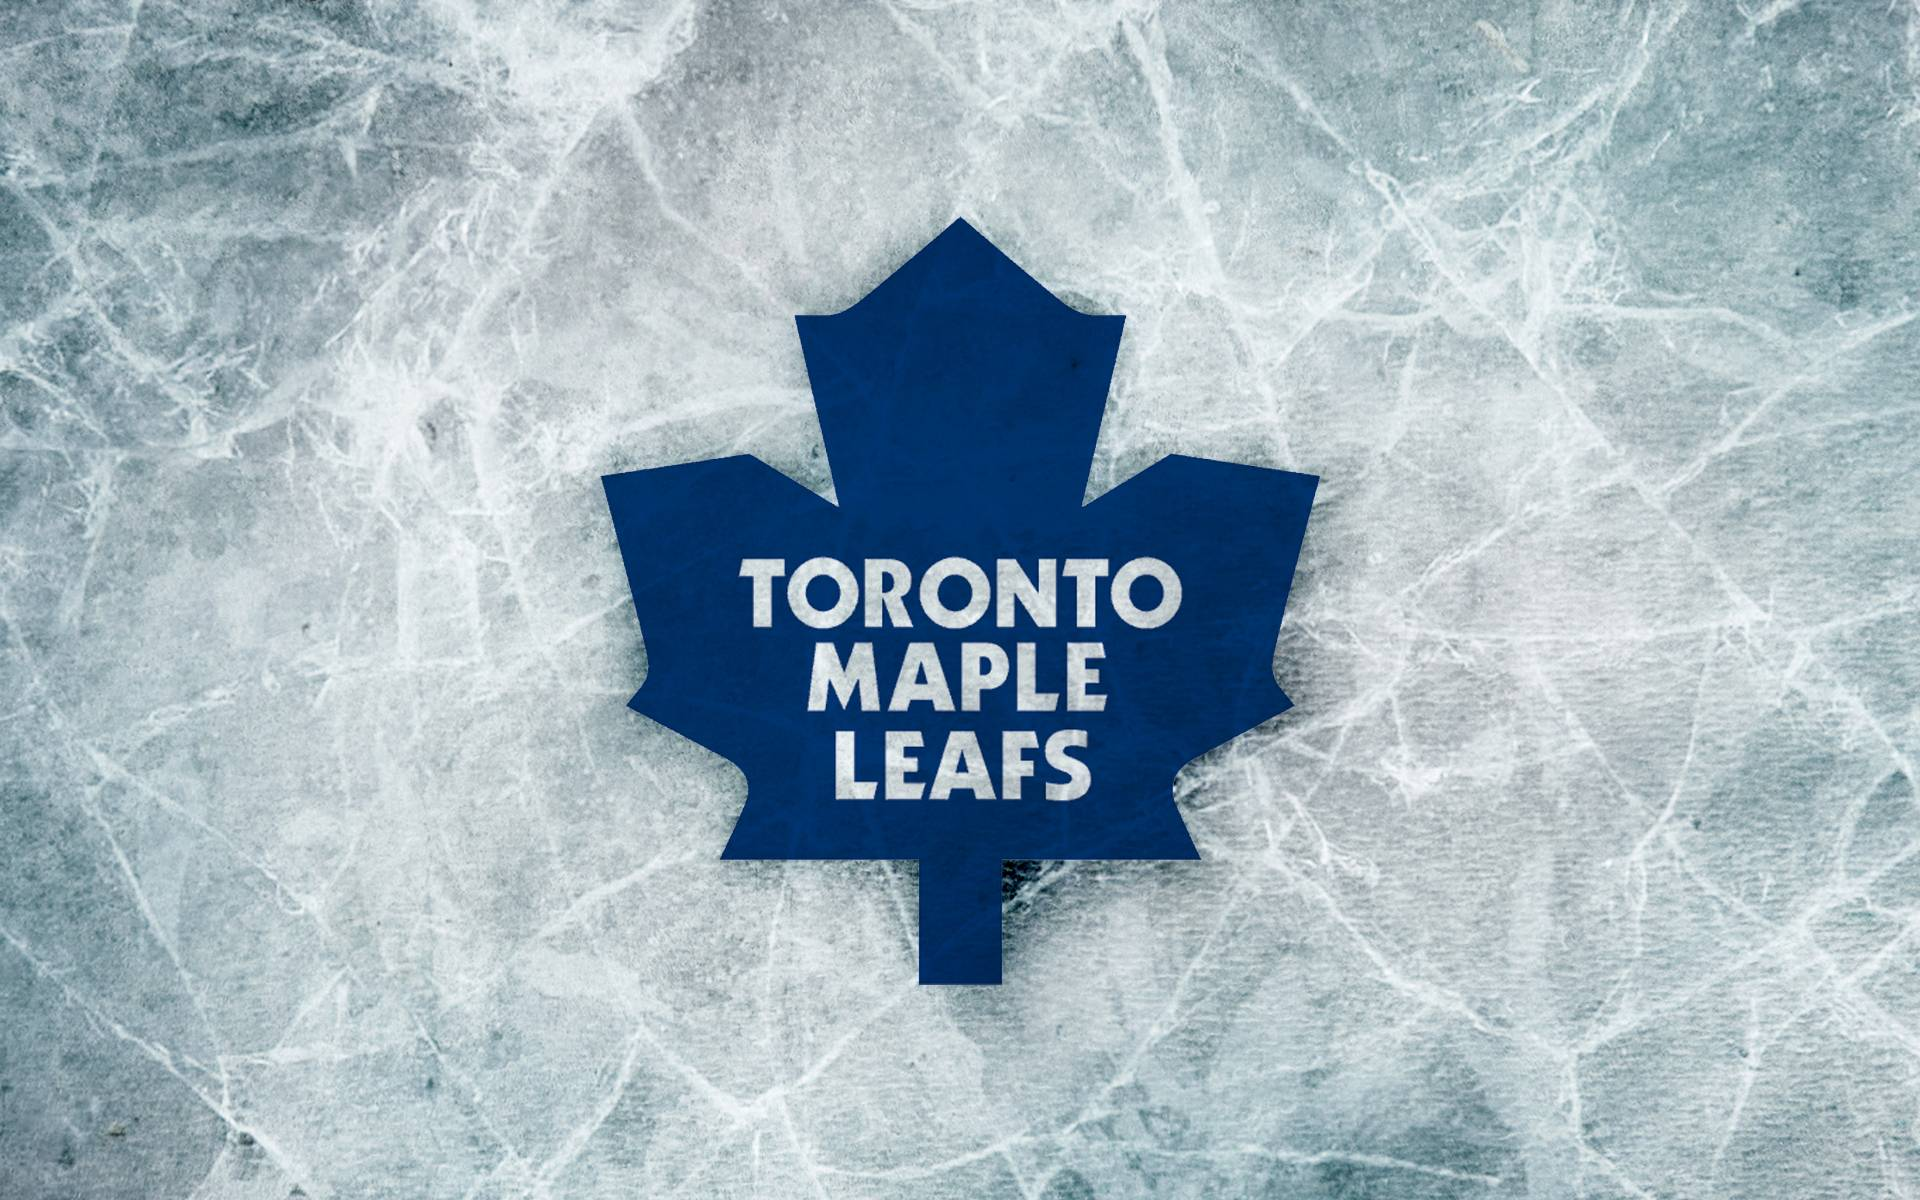 Toronto Maple Leafs Backgrounds